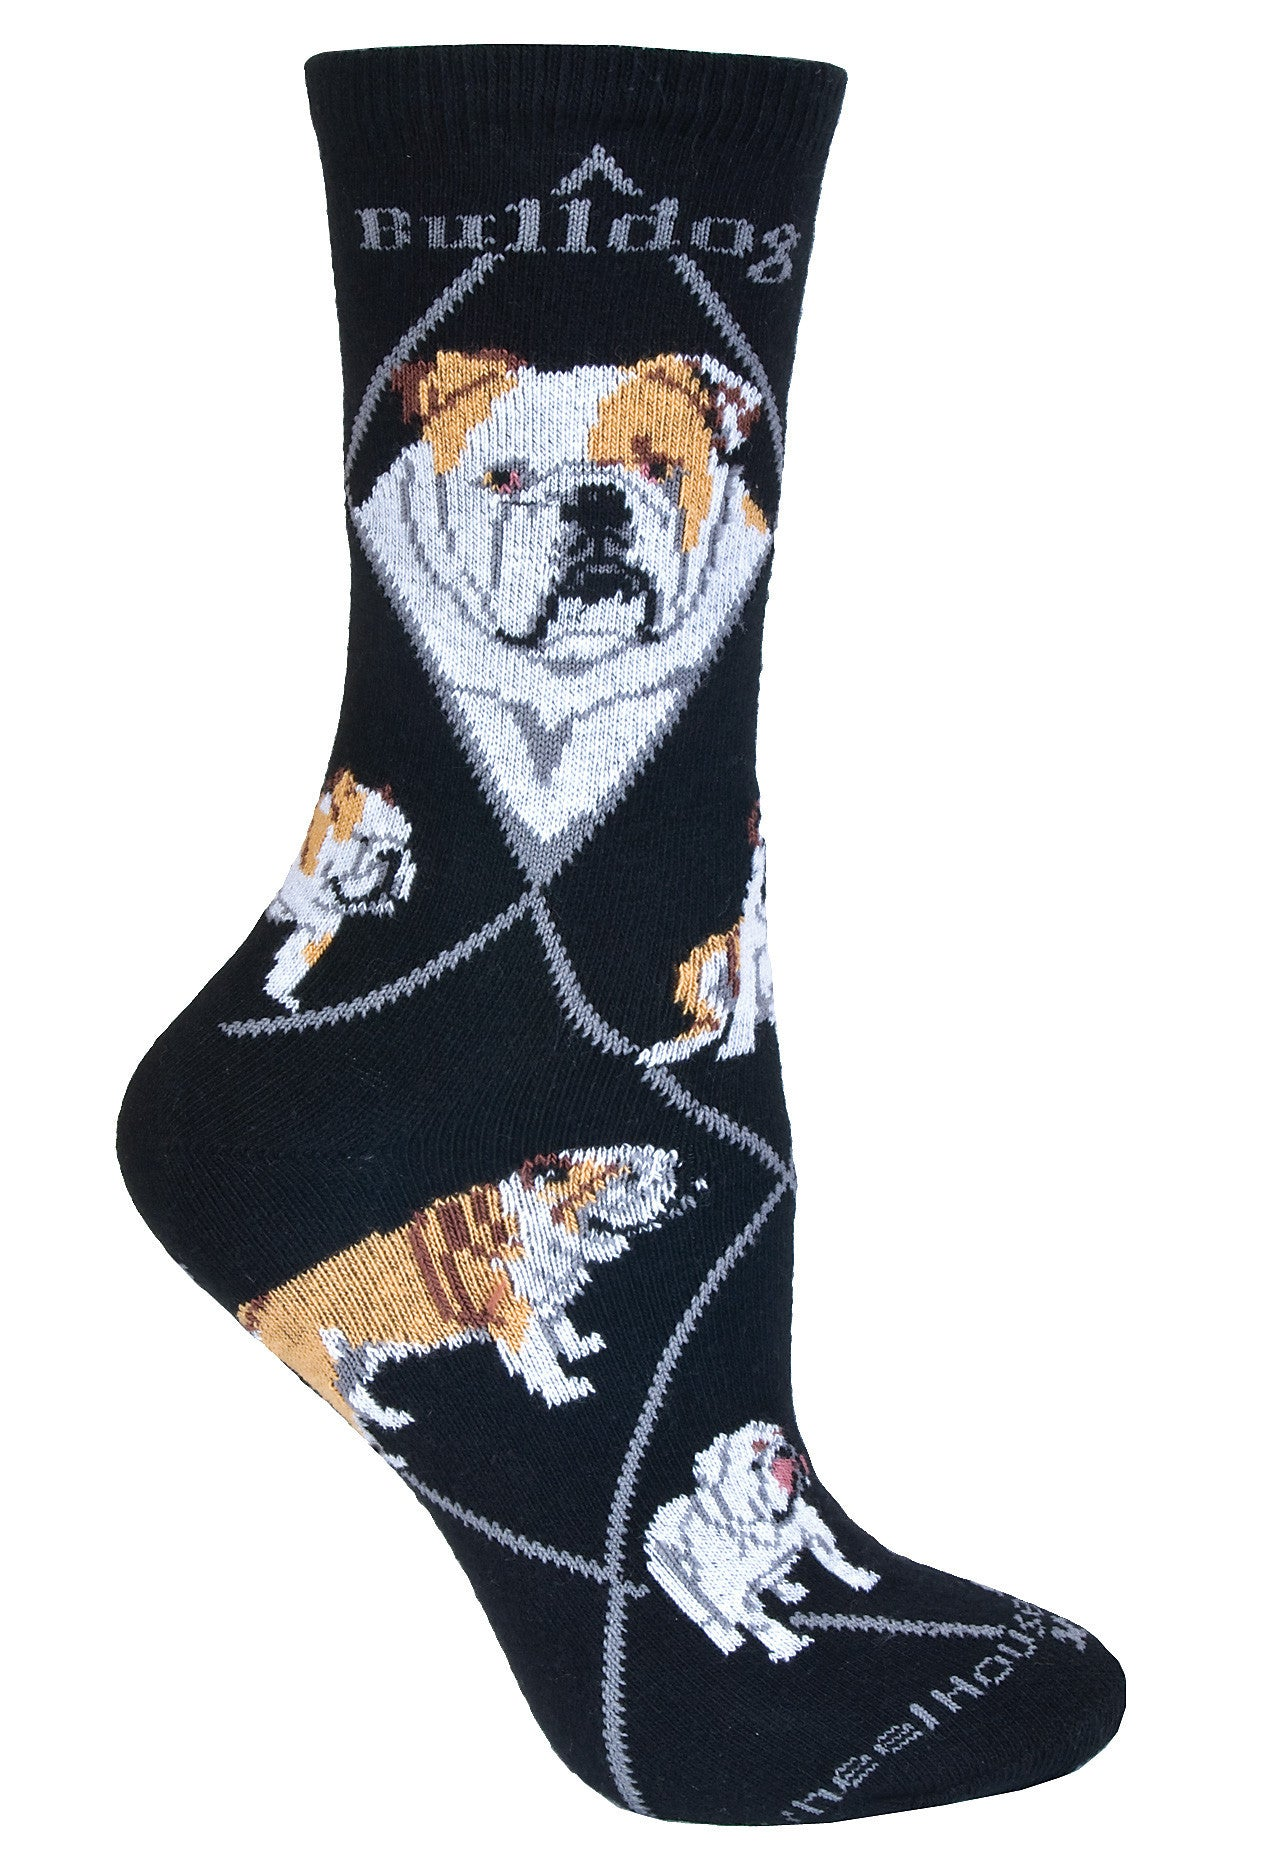 Bulldog on Black Socks